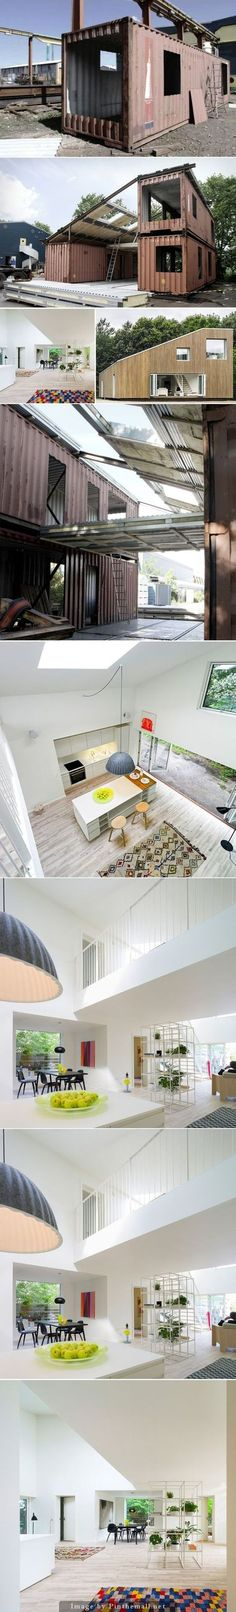 Upcycled Shipping Container Home